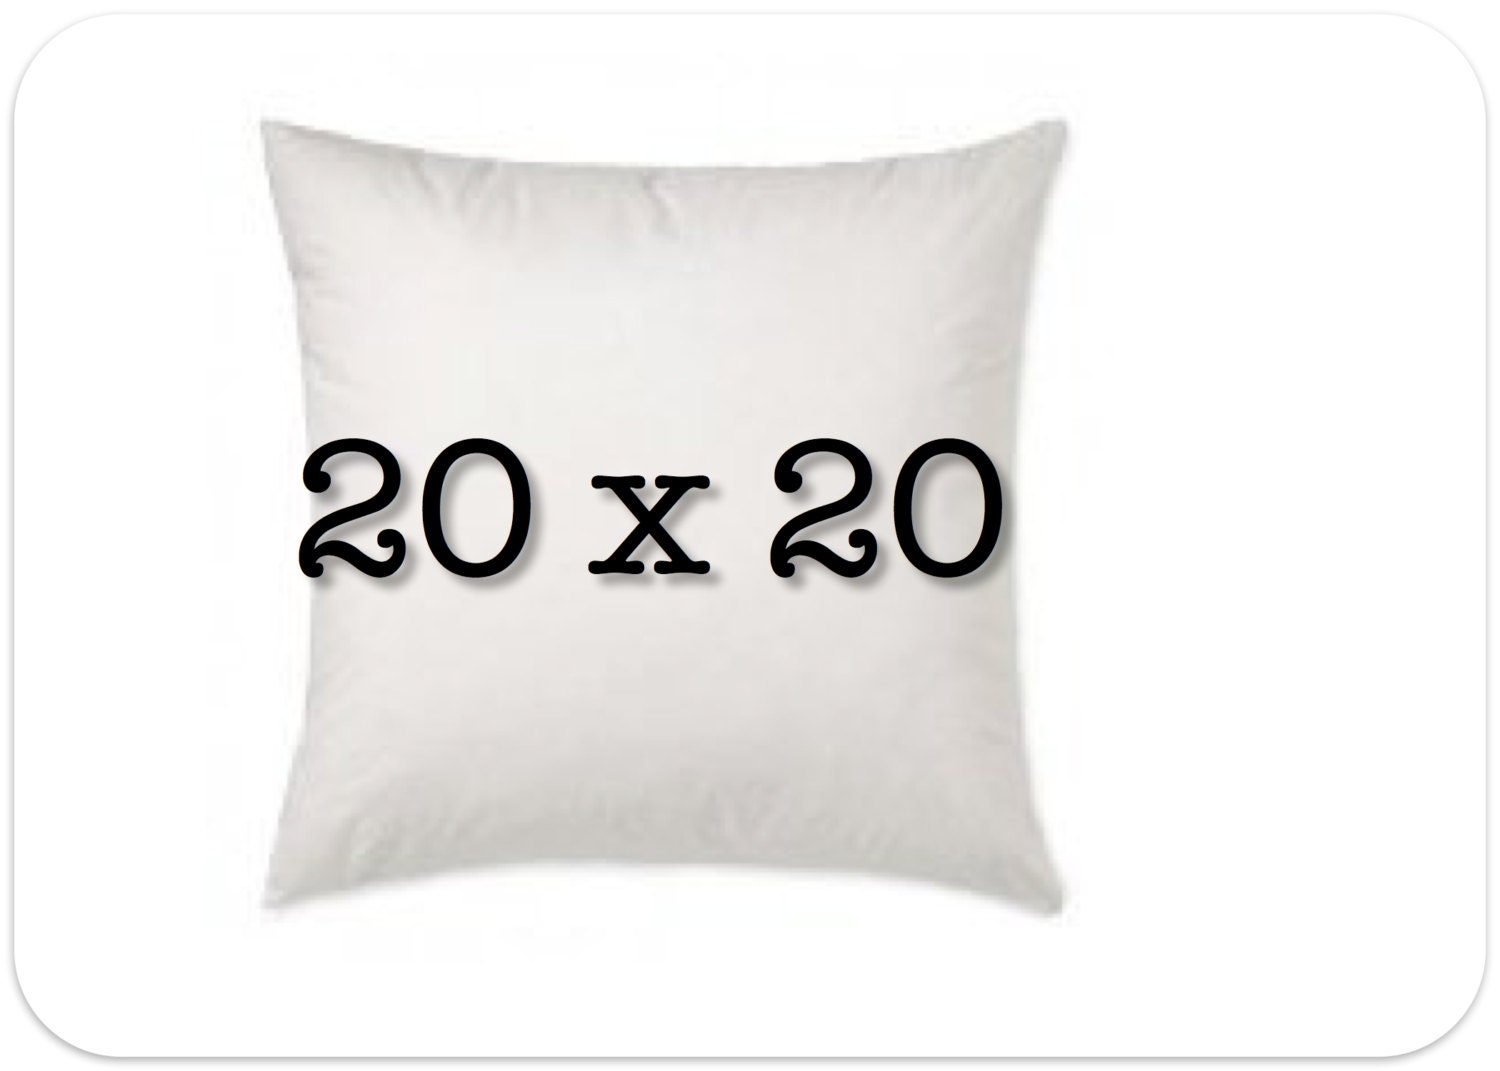 Plump up your pillows in style with this 20